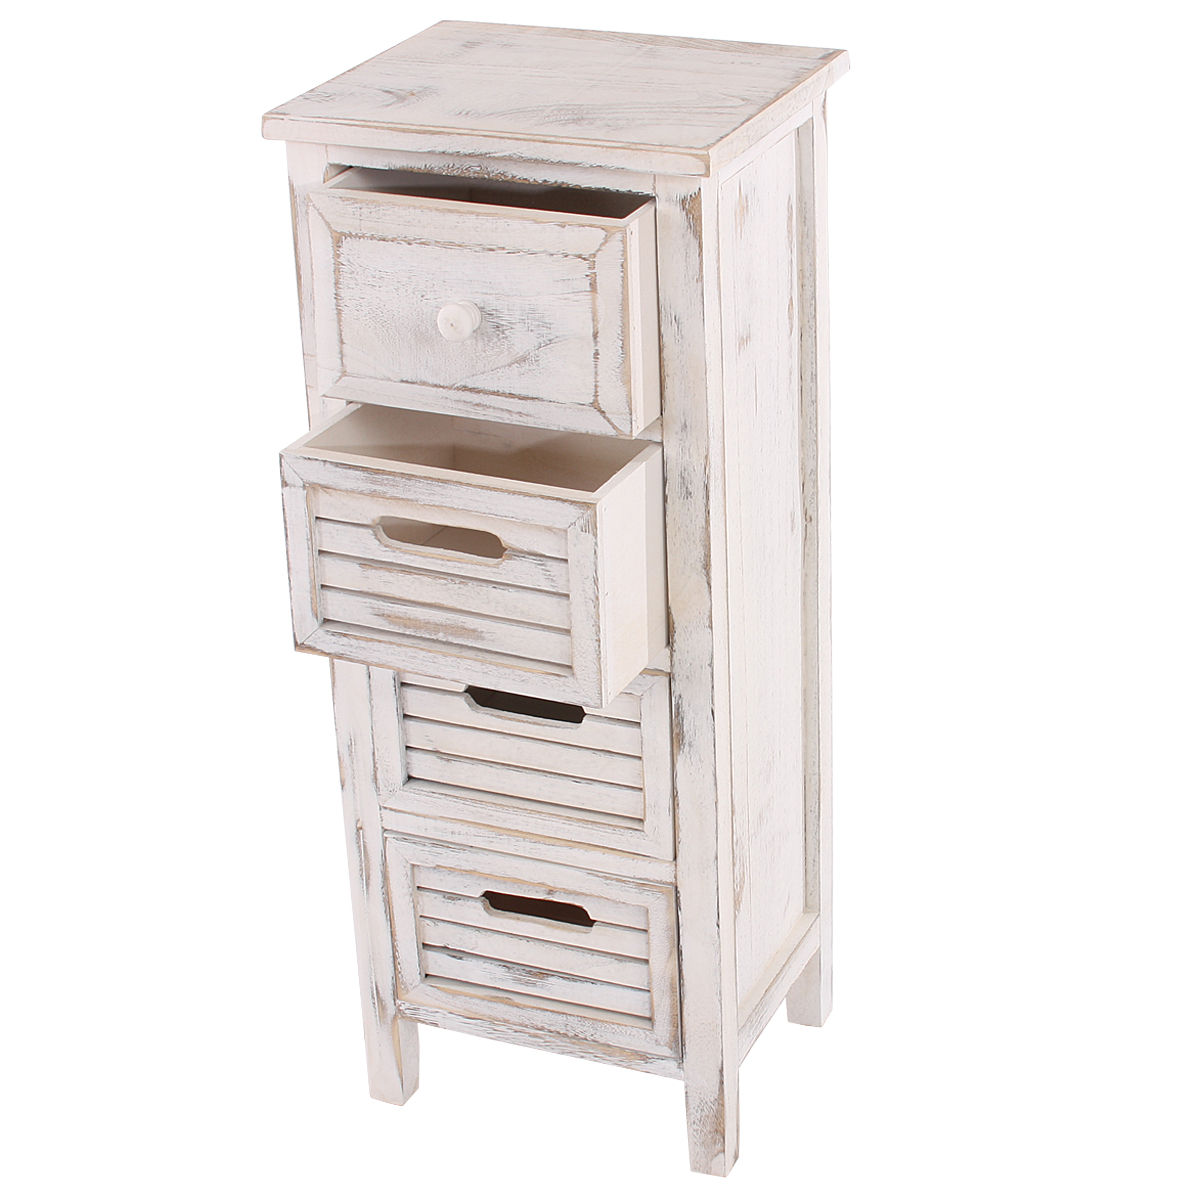 shaby chic kommode 74x30x25cm vintage weiss. Black Bedroom Furniture Sets. Home Design Ideas